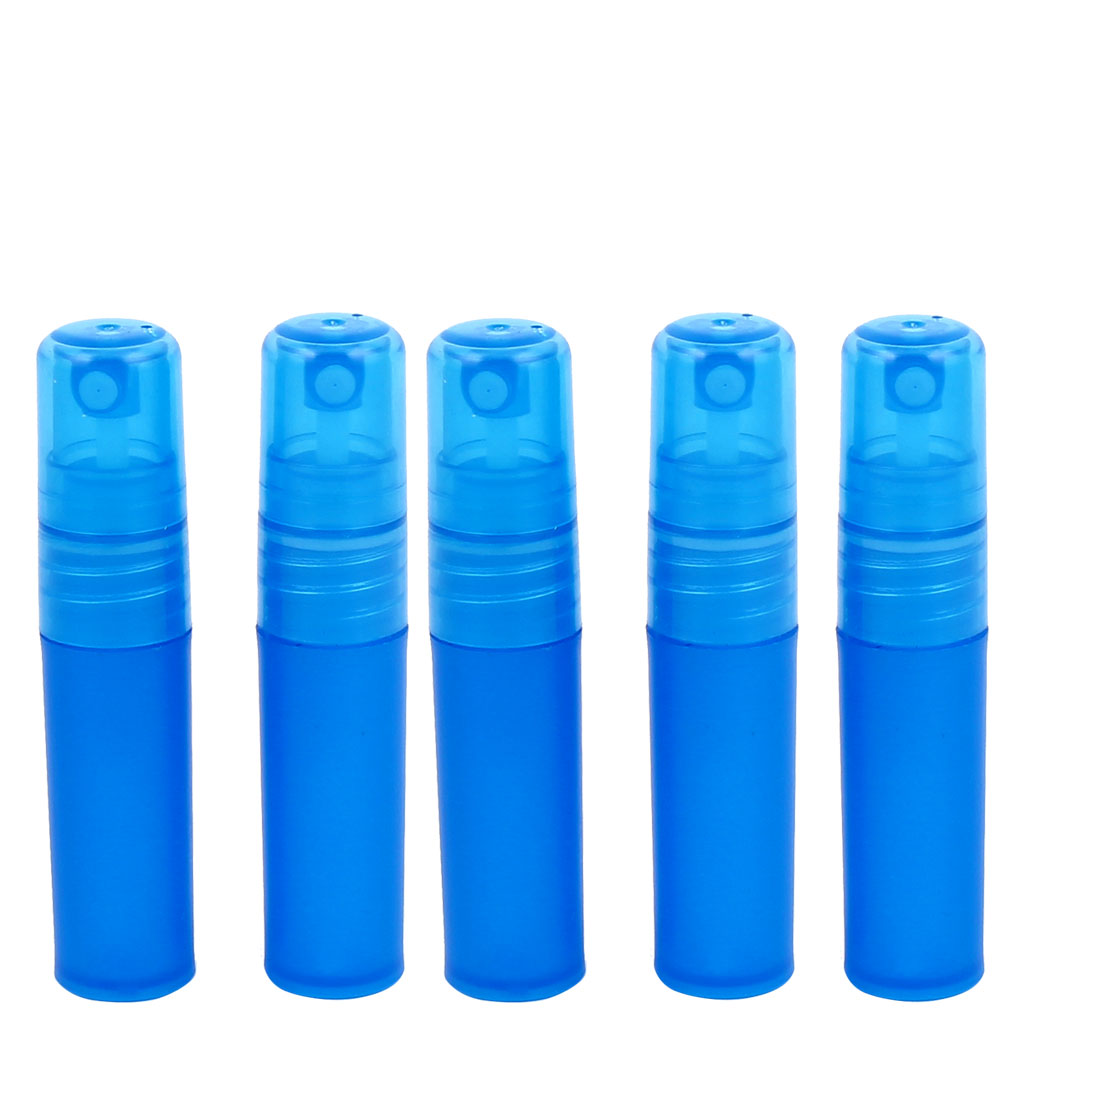 5pcs Dark Blue Plastic Cosmetic Water Liquid Spray Bottle Perfume Container Holder 3ml for Women